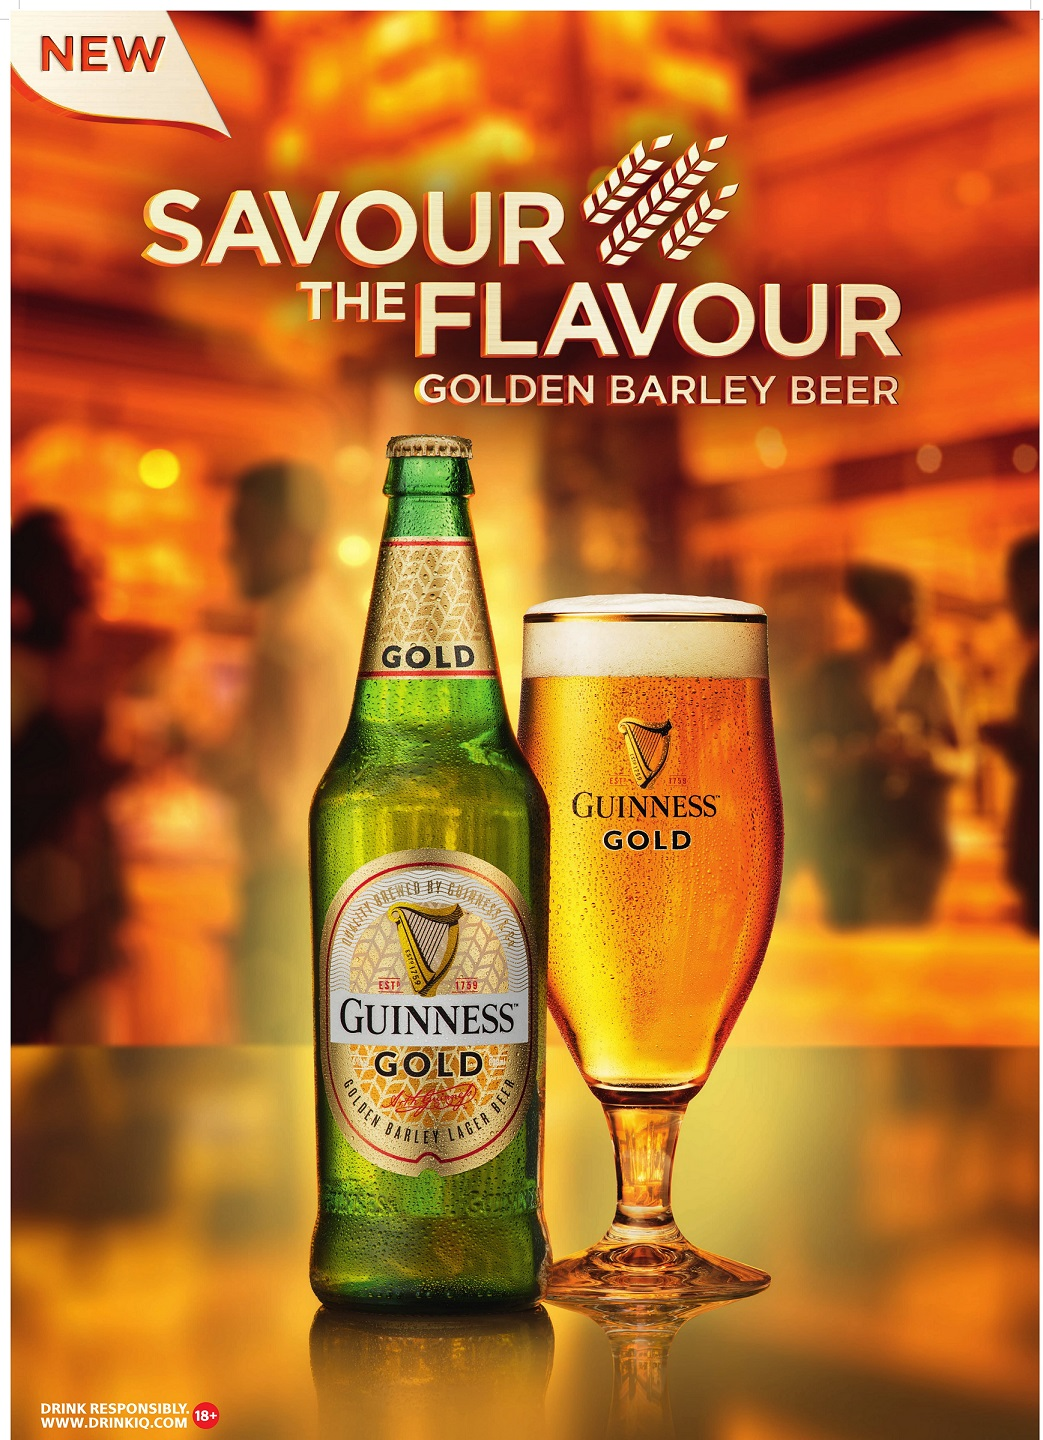 Guinness debuts in Premium Lager category with Guinness Gold - Brand Spur